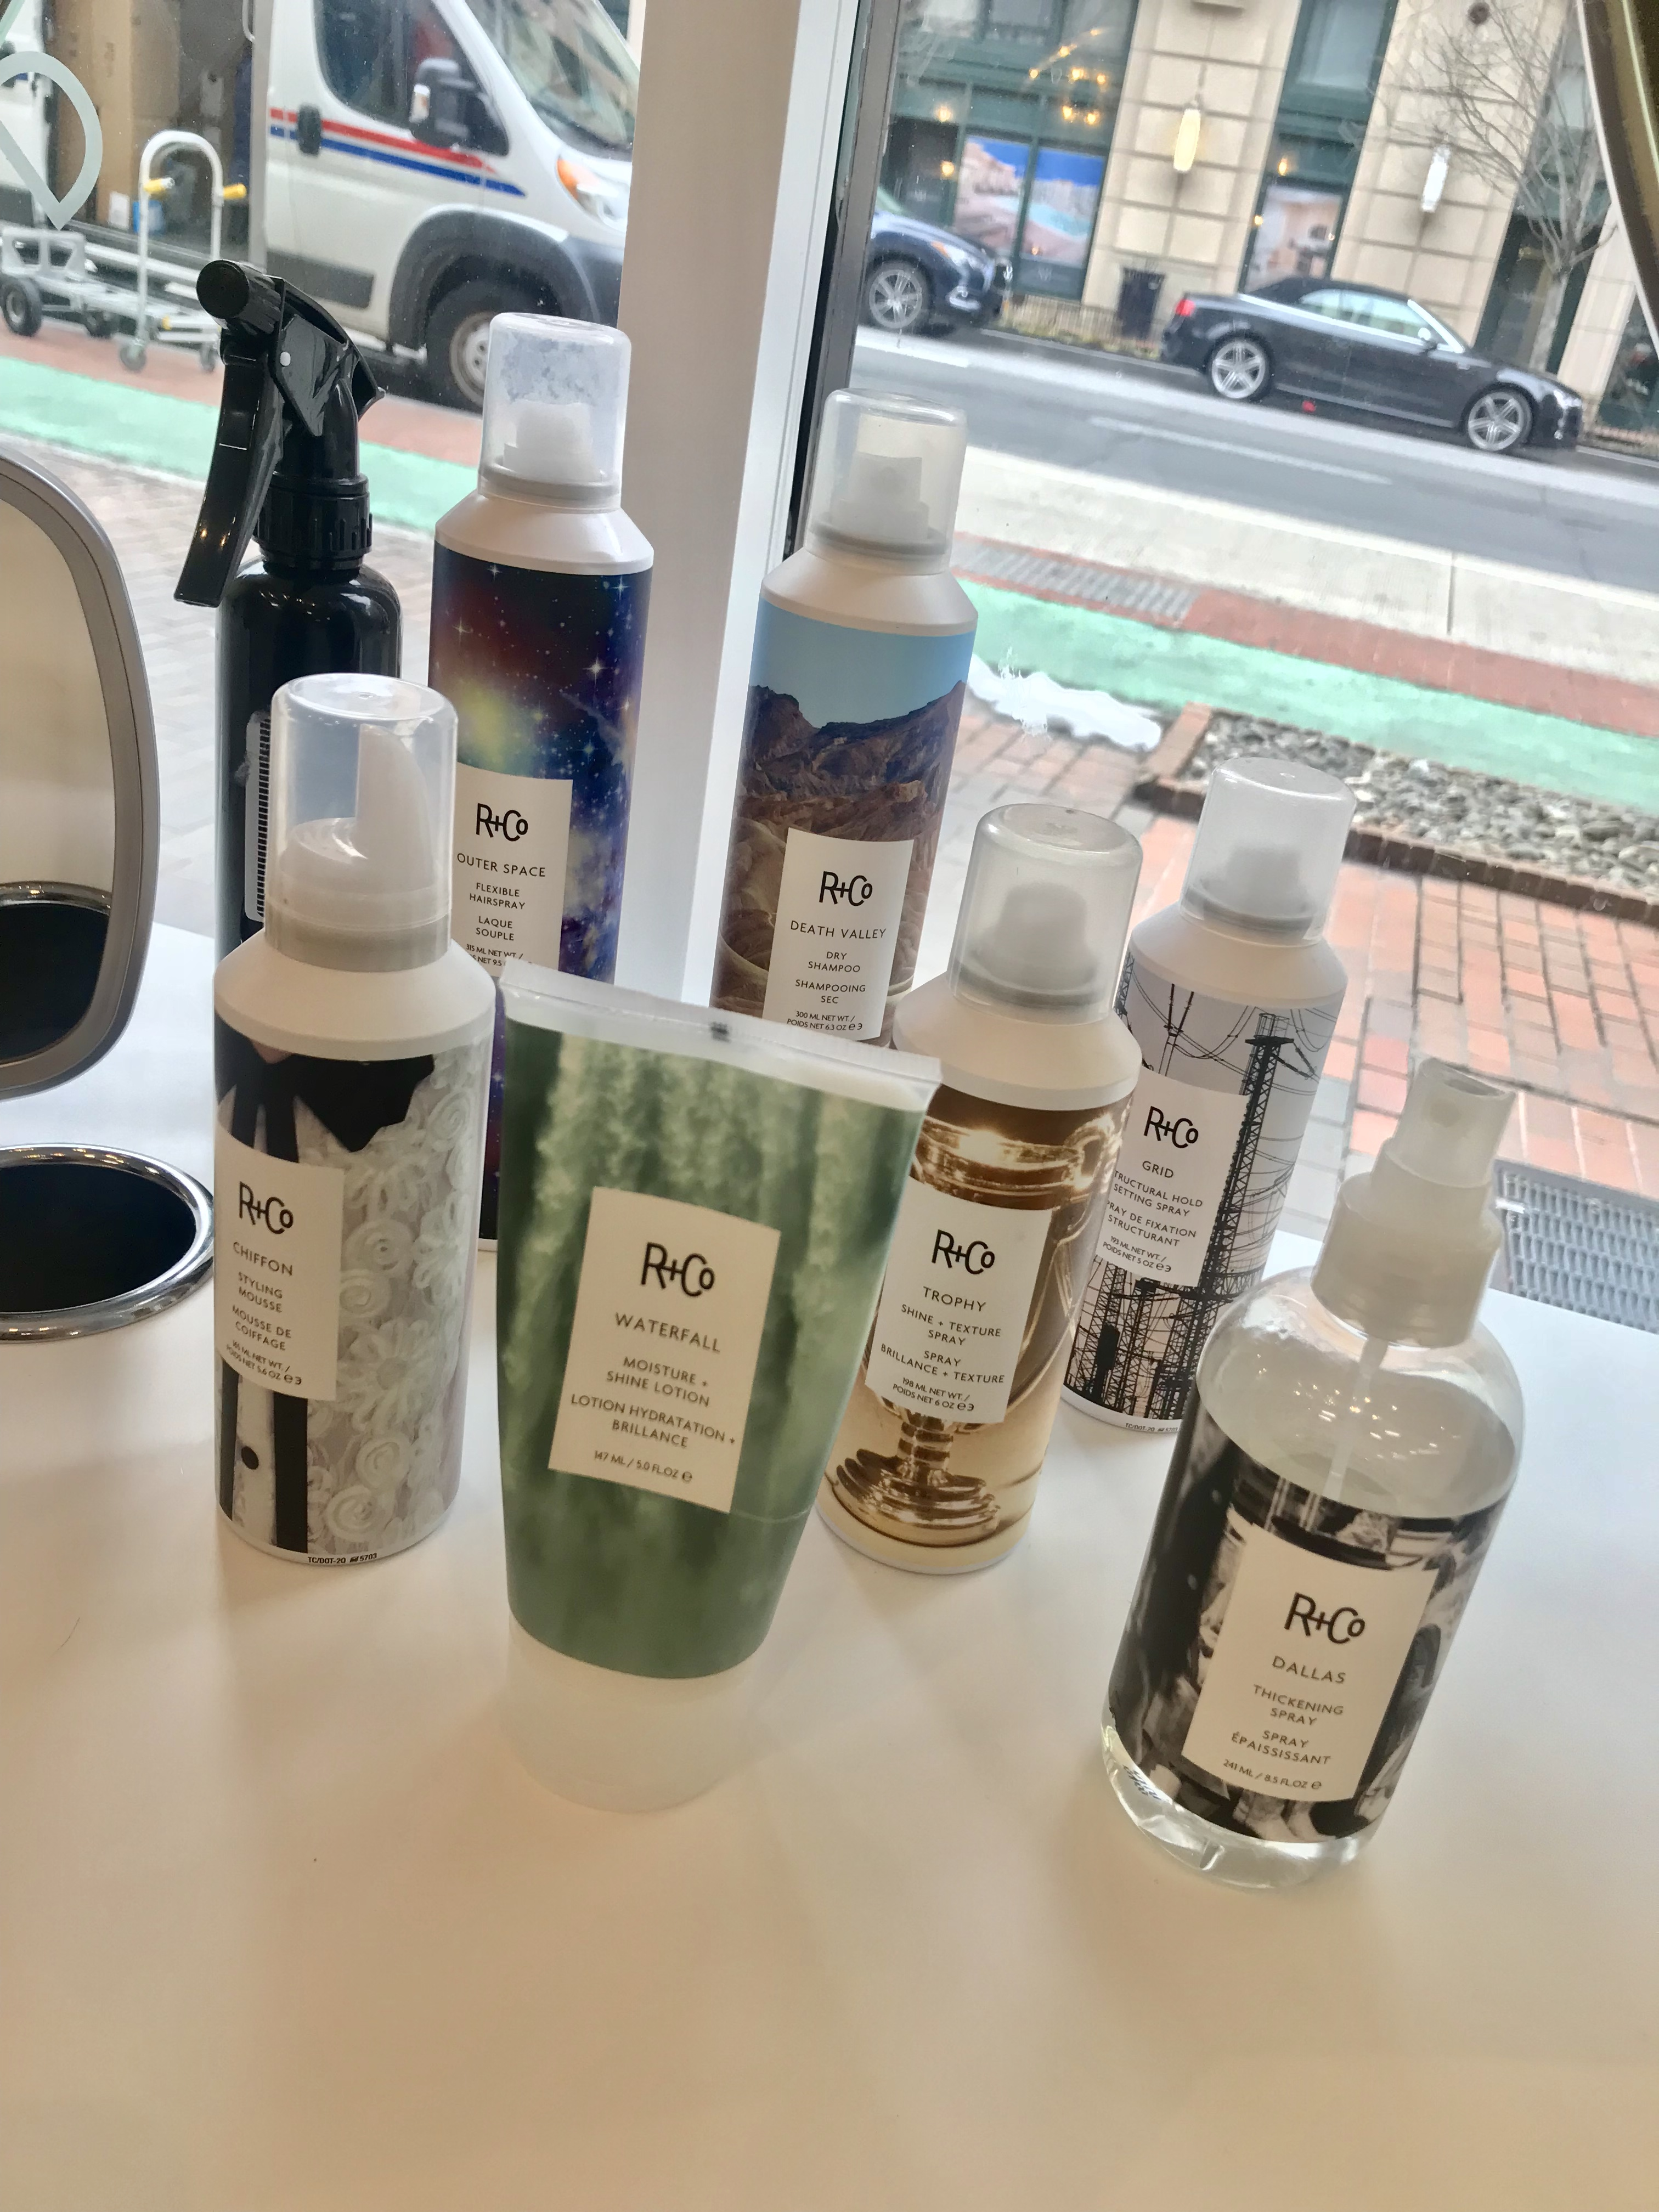 What's Haute, Glam+Go Beach Body blowout, DC blowdry bar, R+Co haircare products